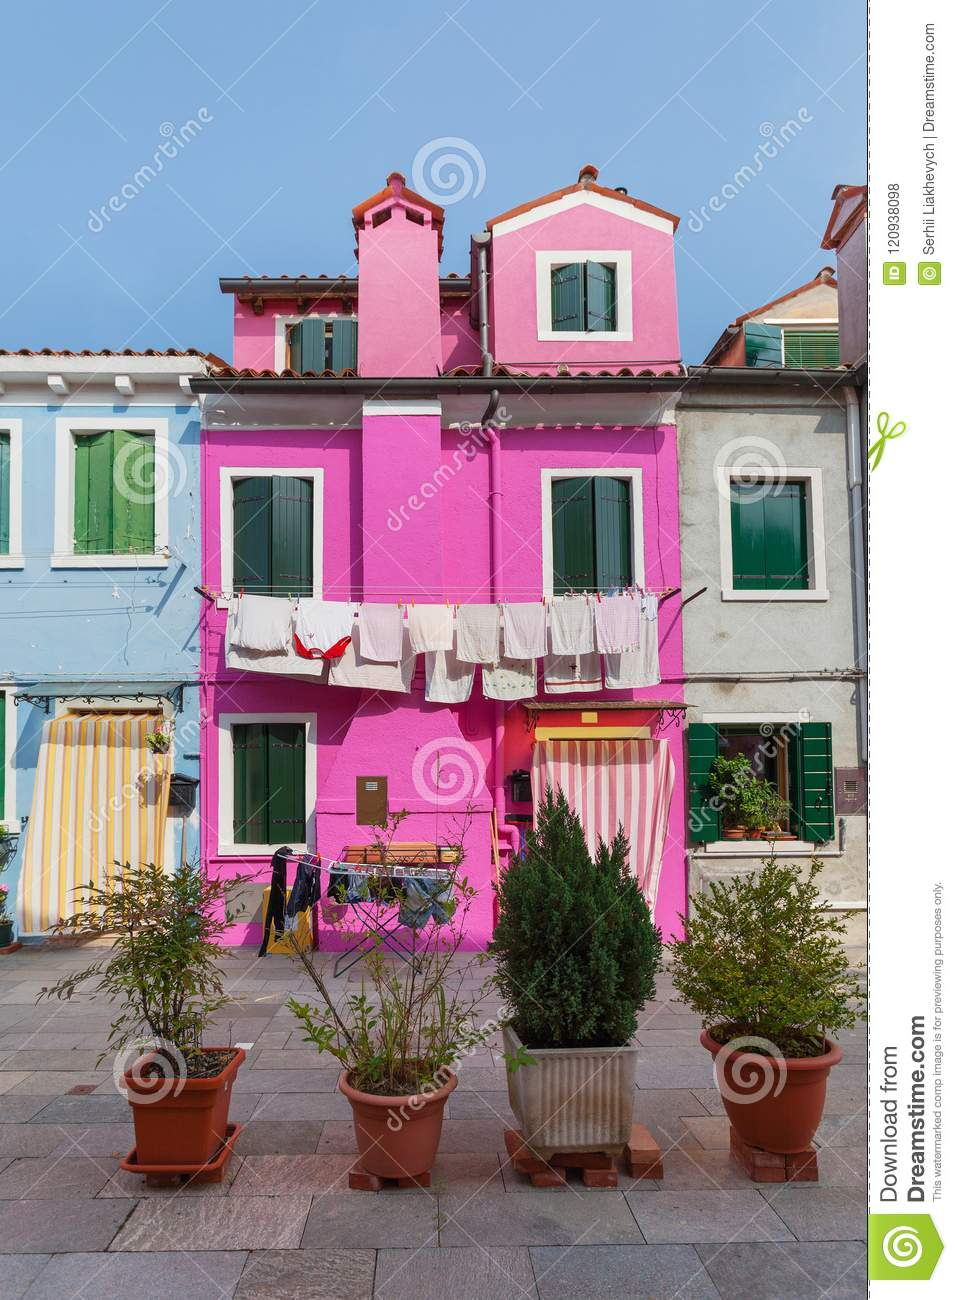 Colorful Houses In Burano, Venice, Italy Stock Photo - Image of ...